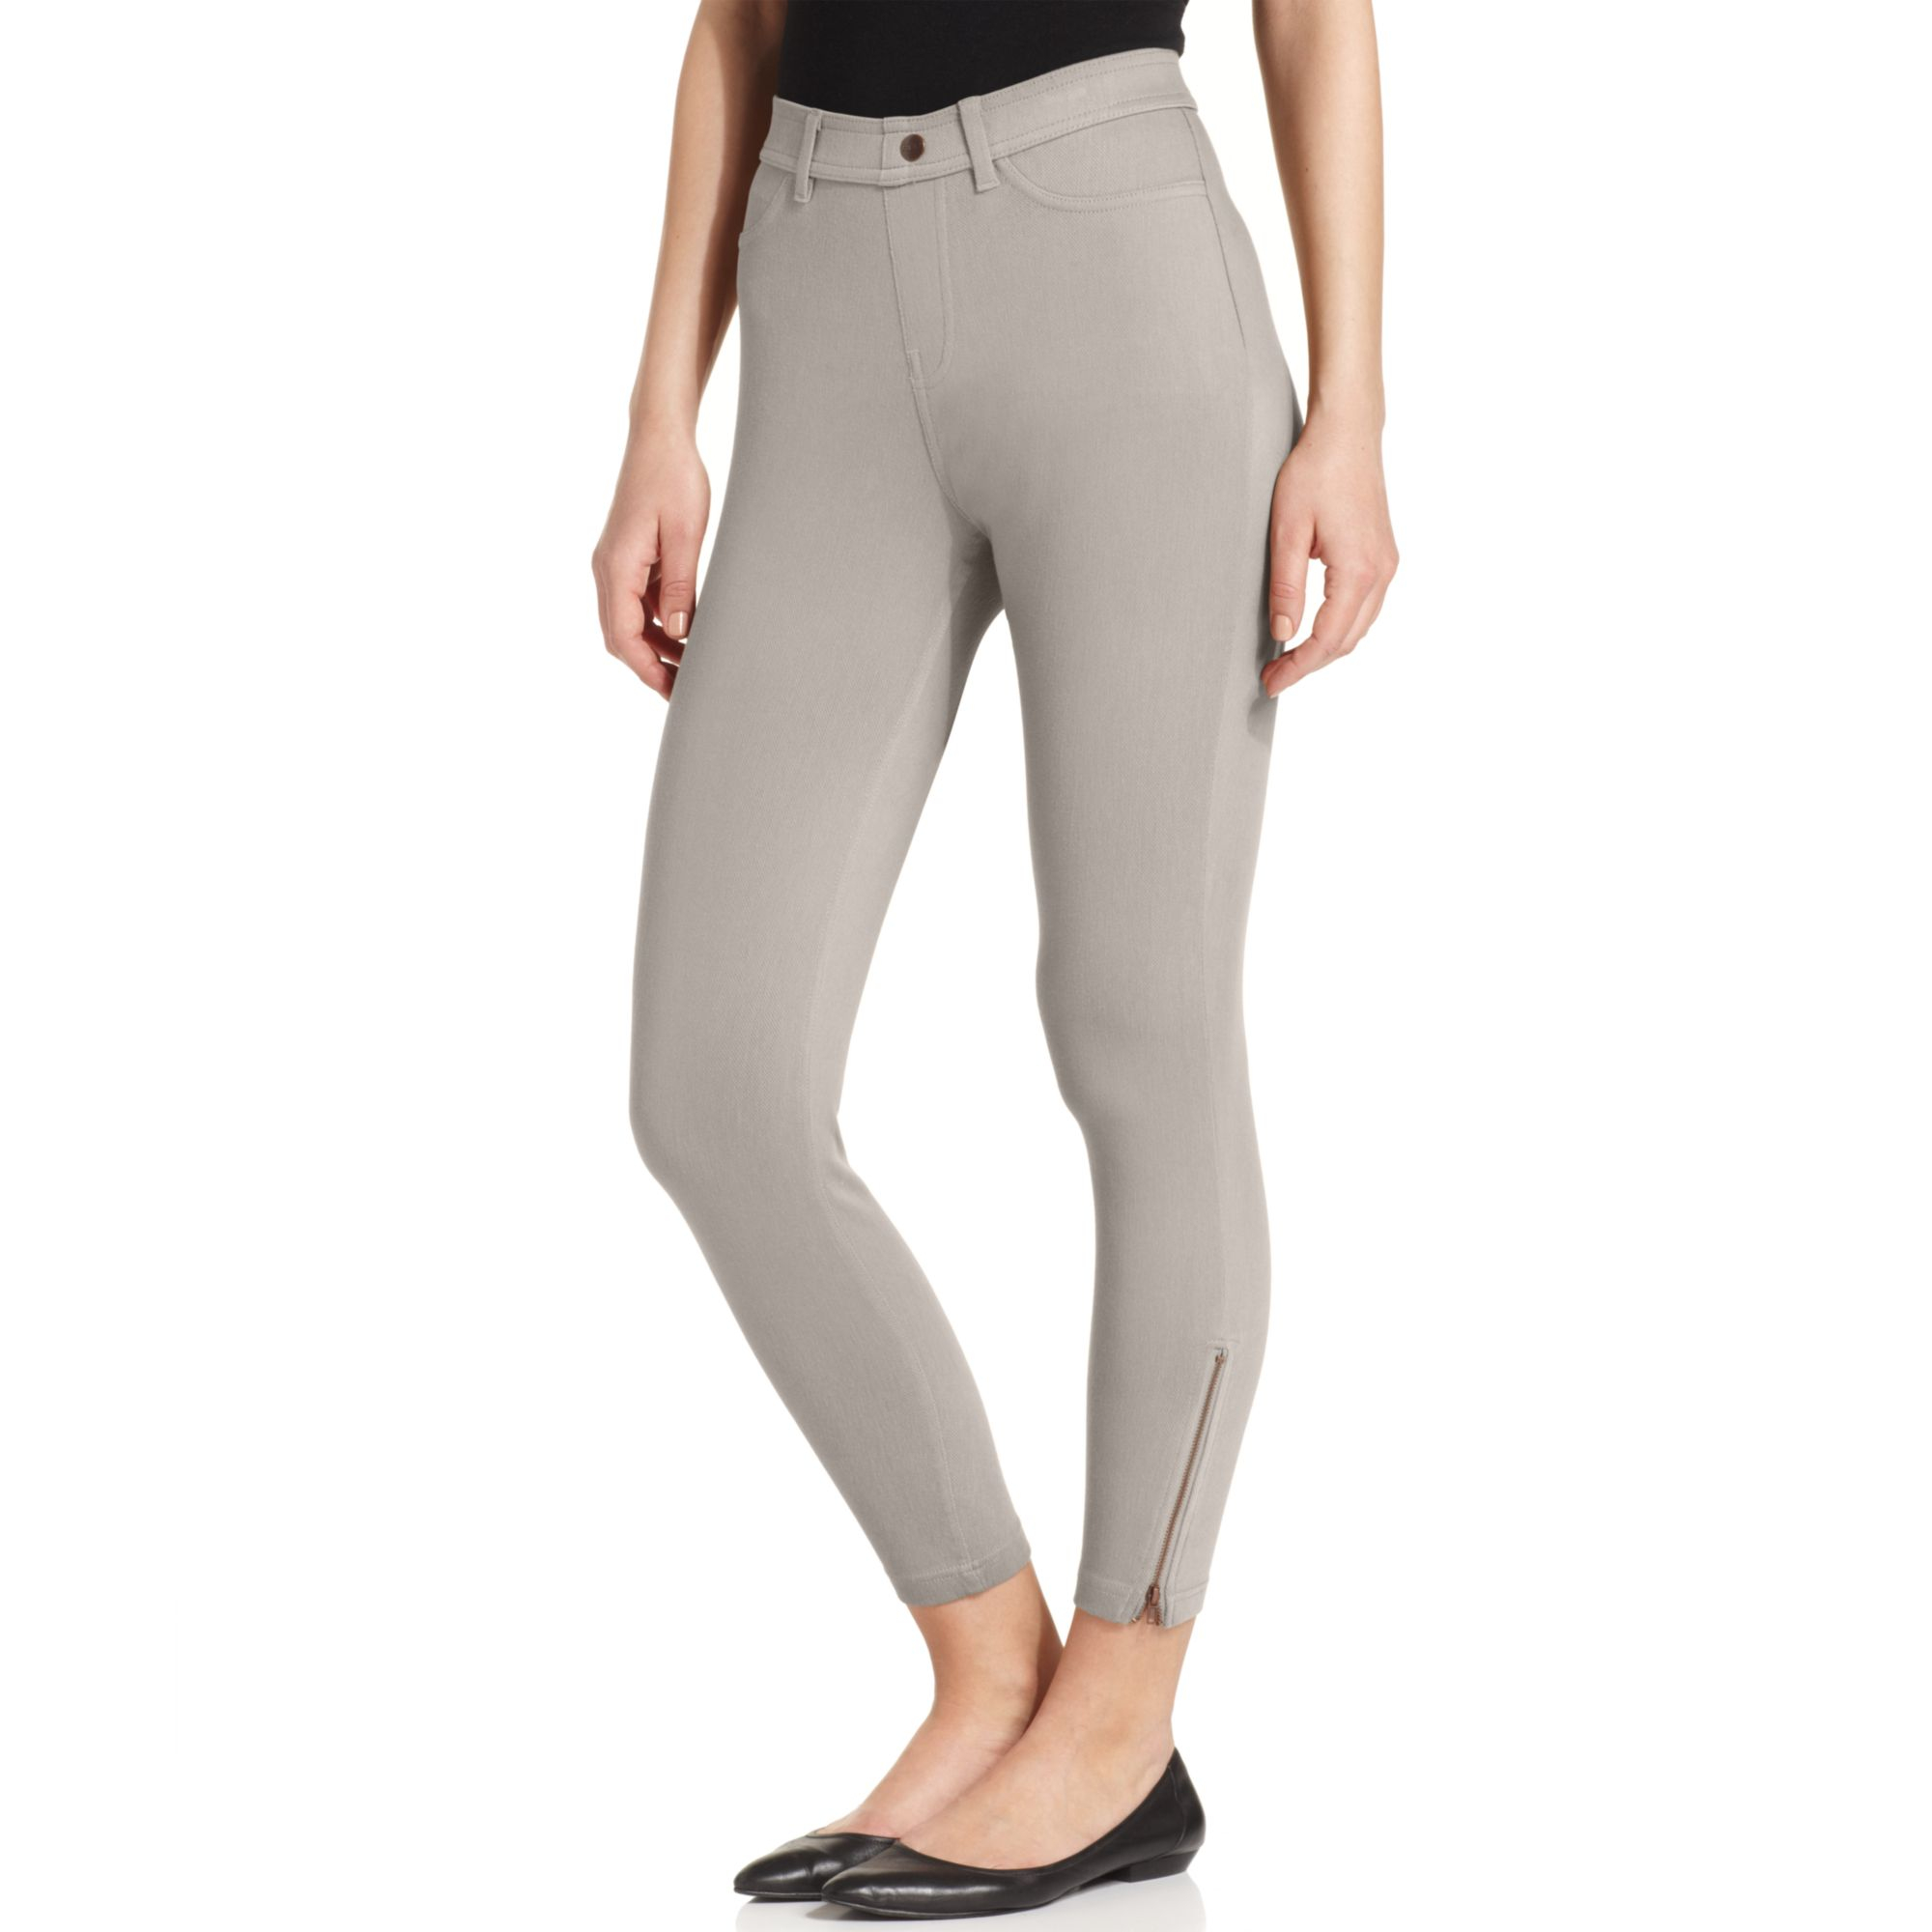 Hue Khaki Skimmer Leggings in Gray (Metal)